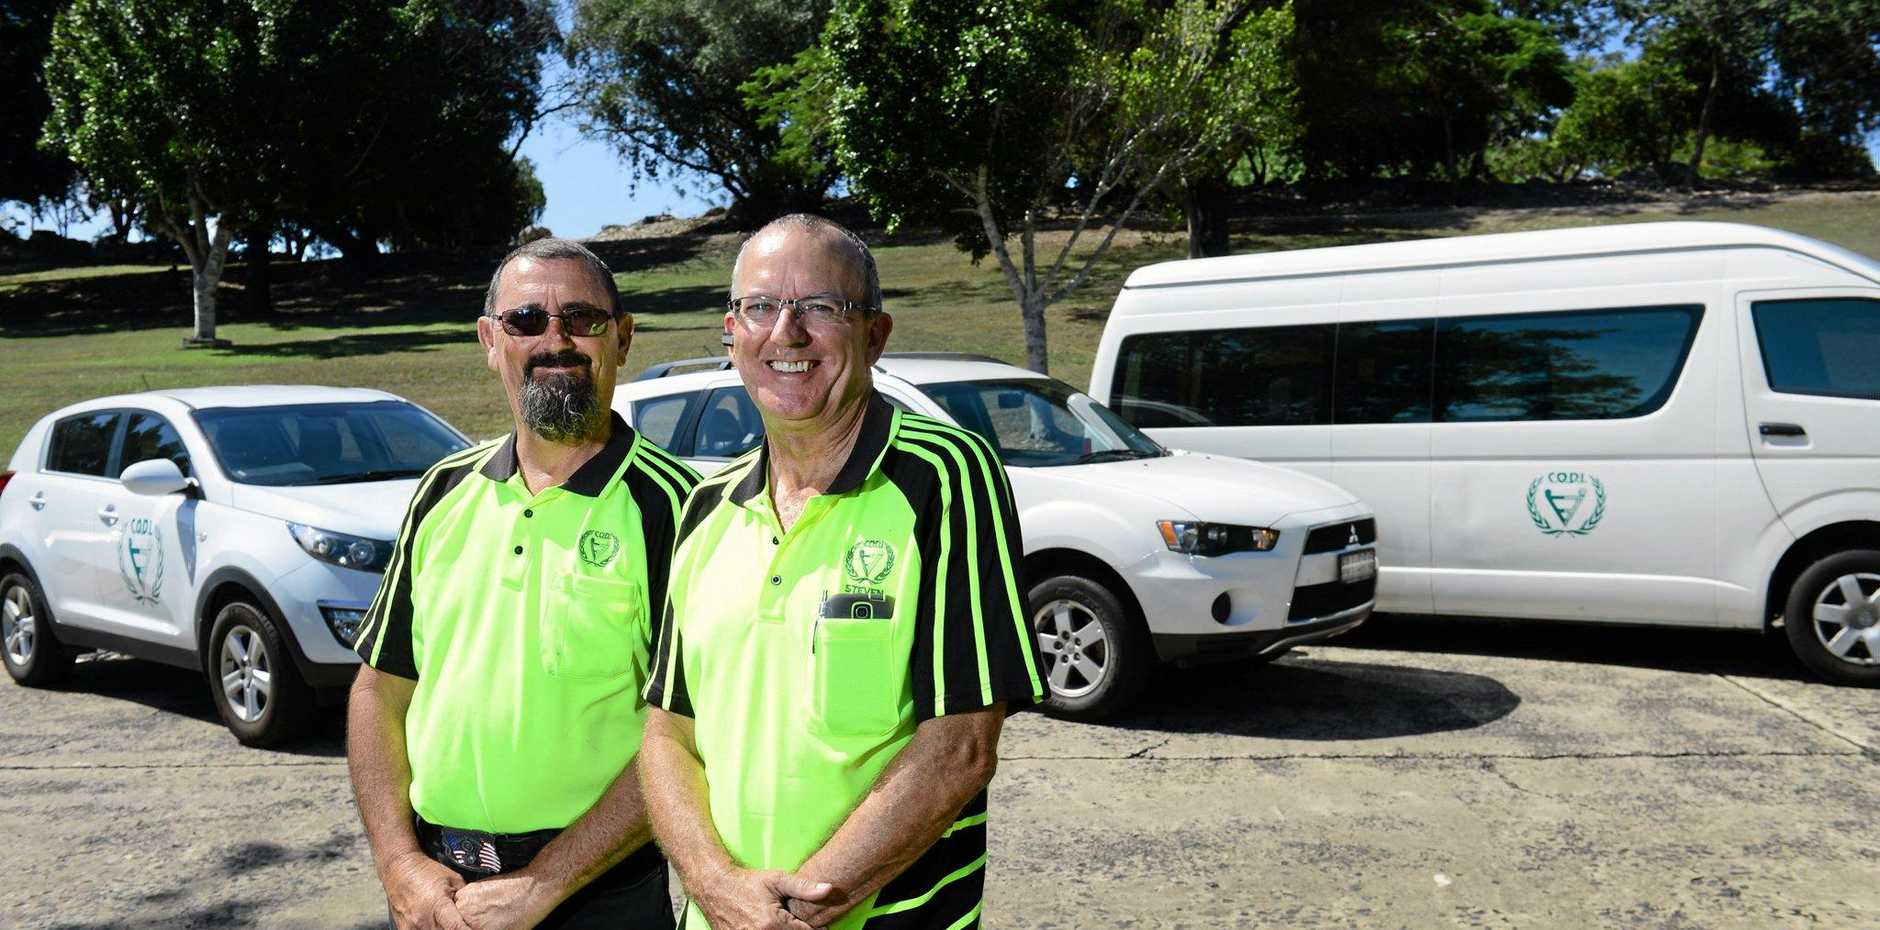 CODI drivers Adrian Pamenter and Steven Arrowsmith help to provide non-urgent transport for people with disabilities.